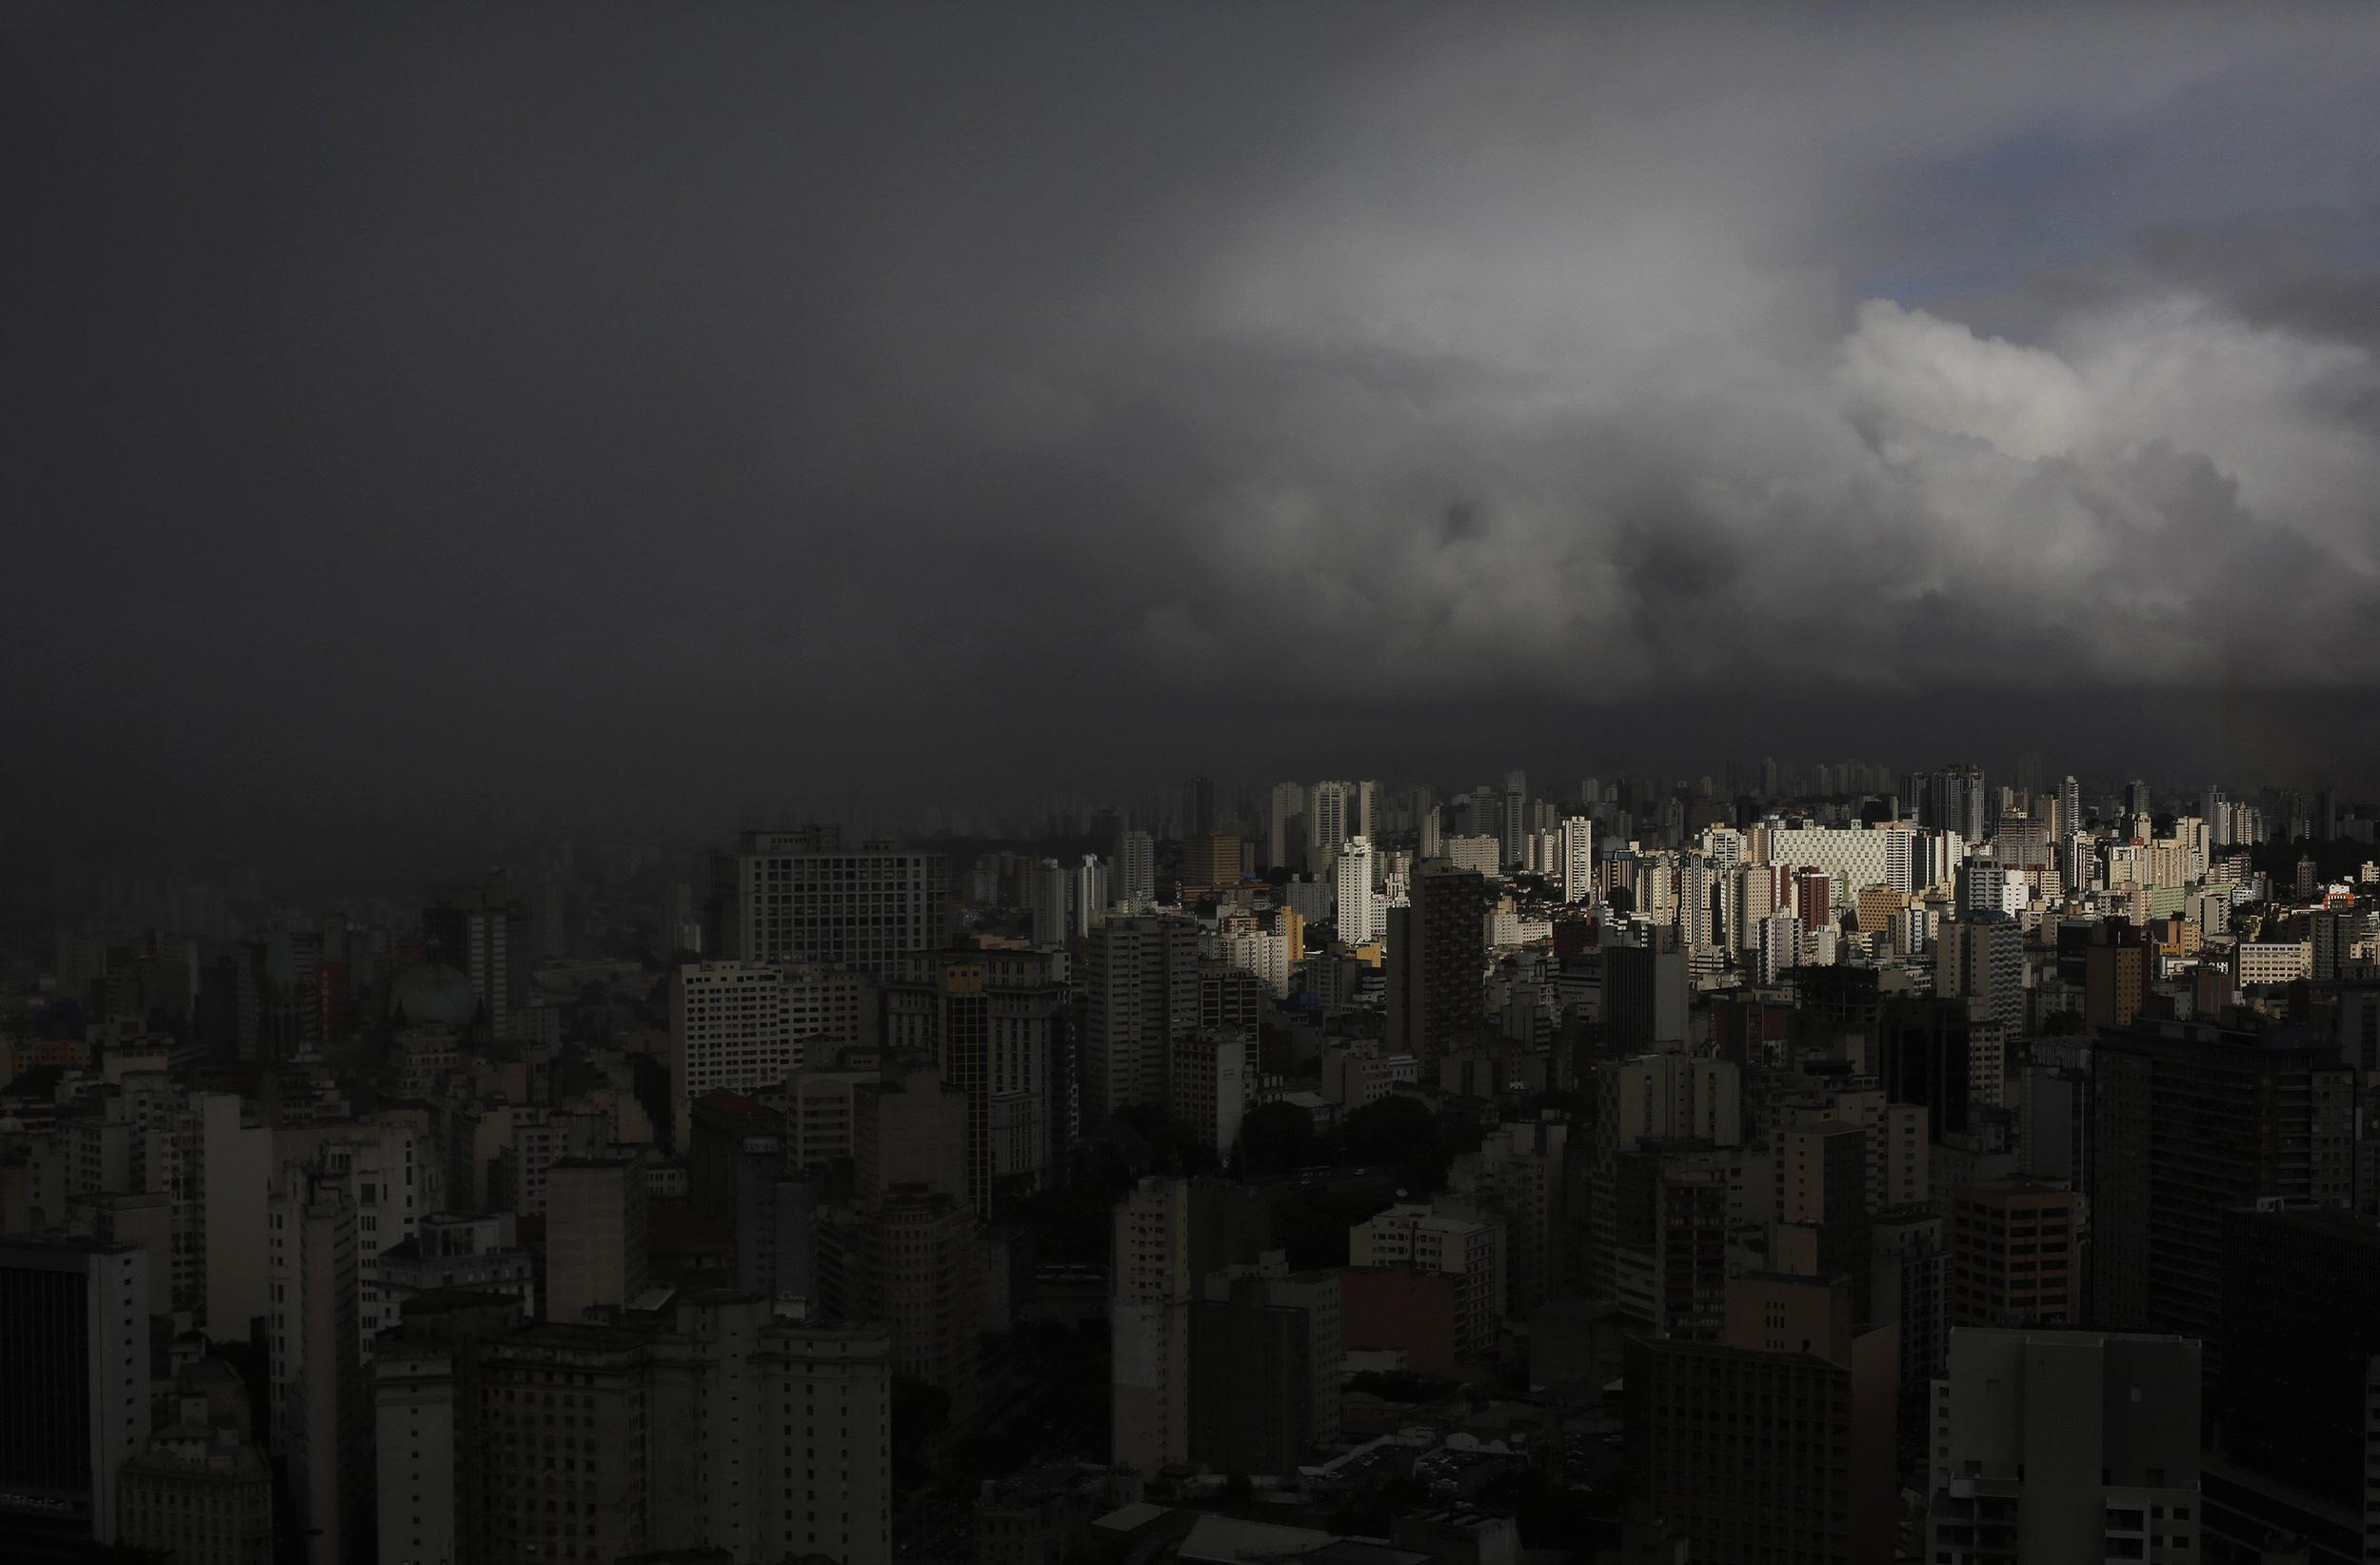 Image: Rain clouds gather over the city of Sao Paulo